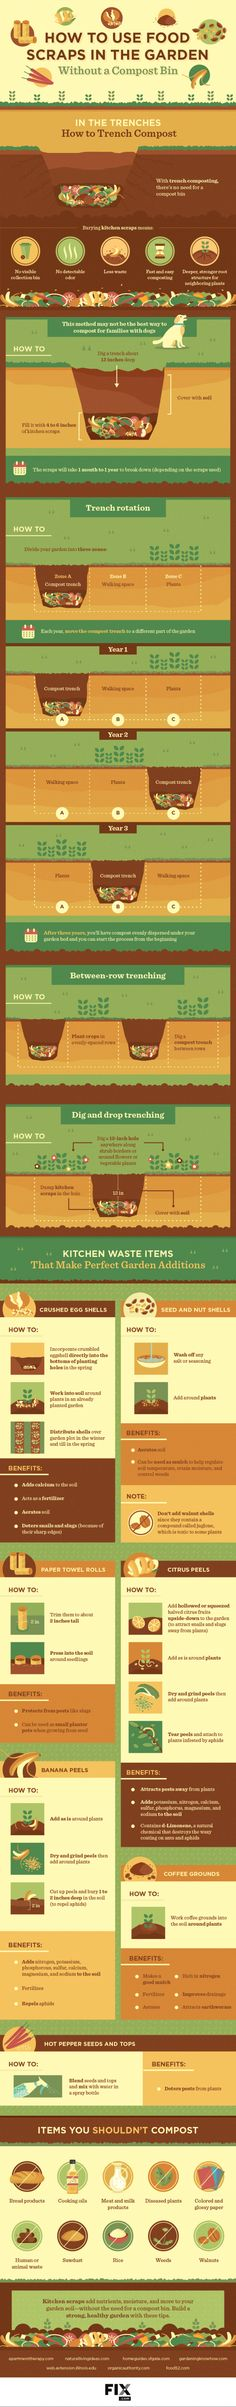 No room for a compost bin? You can still use your kitchen waste to create nutrients in the garden! Trench composting might be the solution for you.